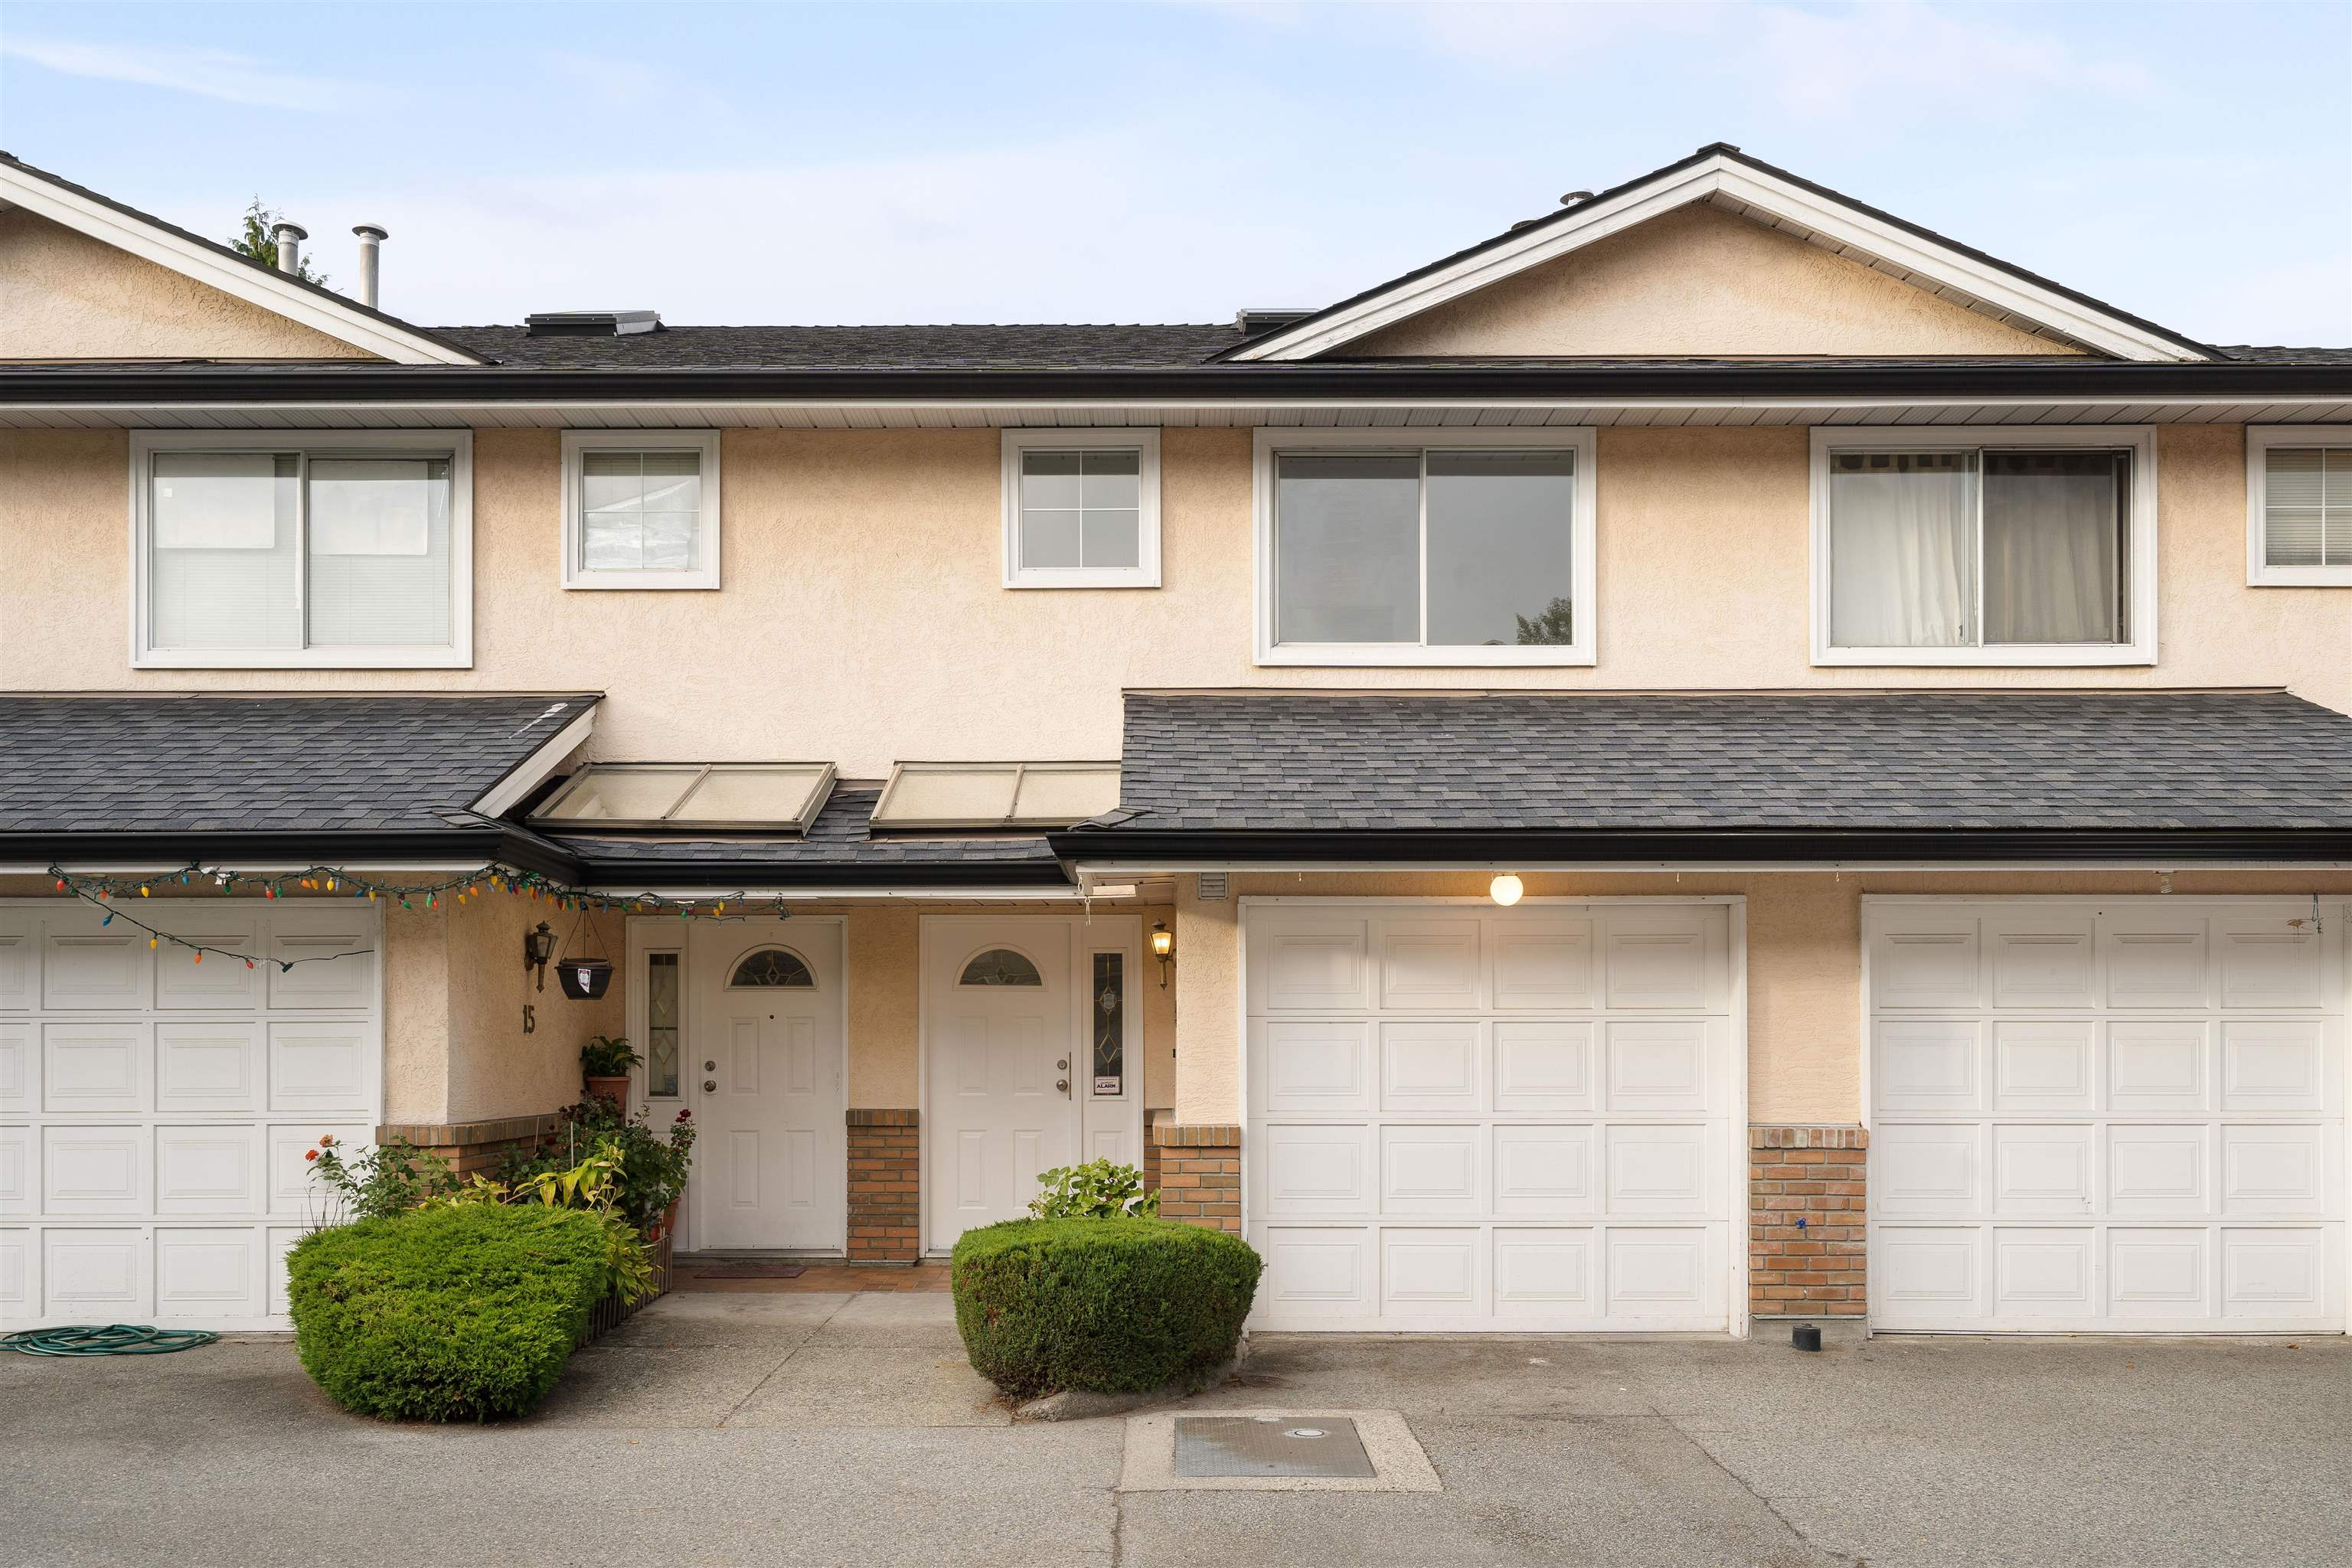 14 7691 MOFFATT ROAD - Brighouse South Townhouse for sale, 3 Bedrooms (R2624689)